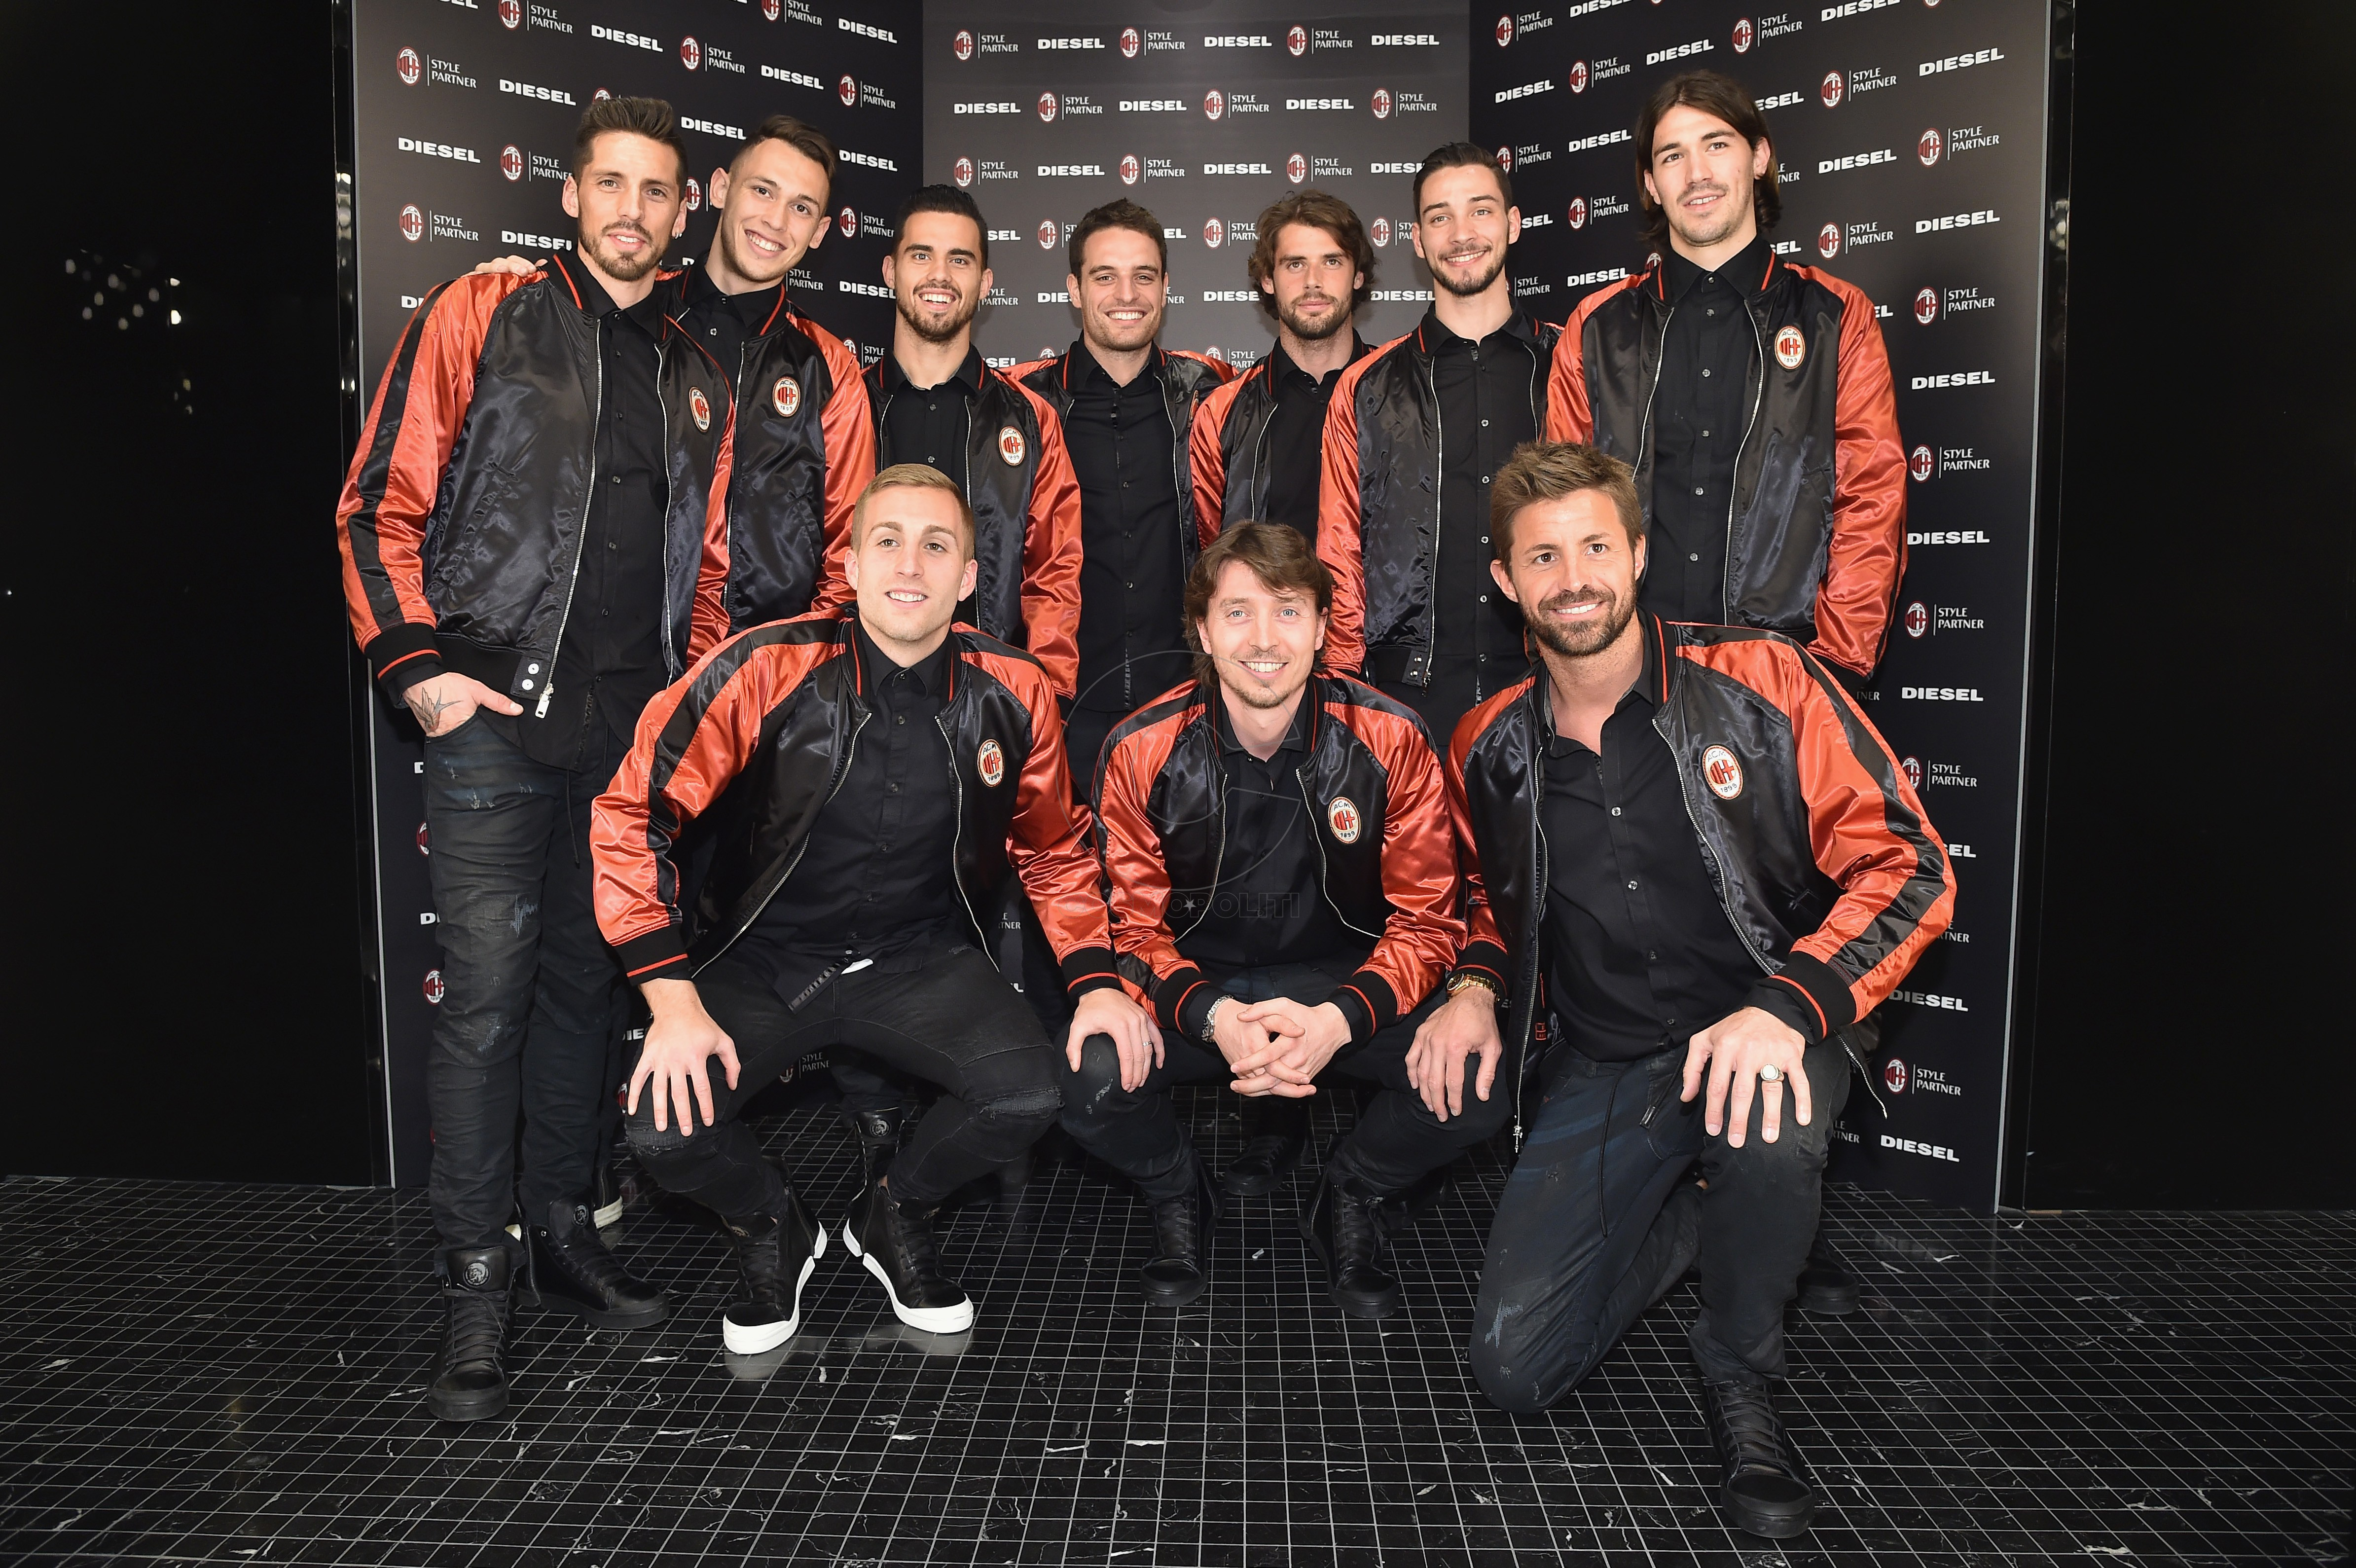 MILAN, ITALY - MARCH 14: (L-R 2nd Row) Jose Ernesto Sosa, Lucas Ocampos, Jesus Joaquin Fernandez Saez de la Torre (also know as Suso), Giacomo Bonaventura, Andrea Poli, Mattia de Sciglio, Alessio Romagnoli, (L-R 1st Row) Gerard Deulofeu, Riccardo Montolivo and Marco Storari attend The New Bomber Presentation at the Diesel Store on March 14, 2017 in Milan, Italy. (Photo by Jacopo Raule/Getty Images for Diesel)